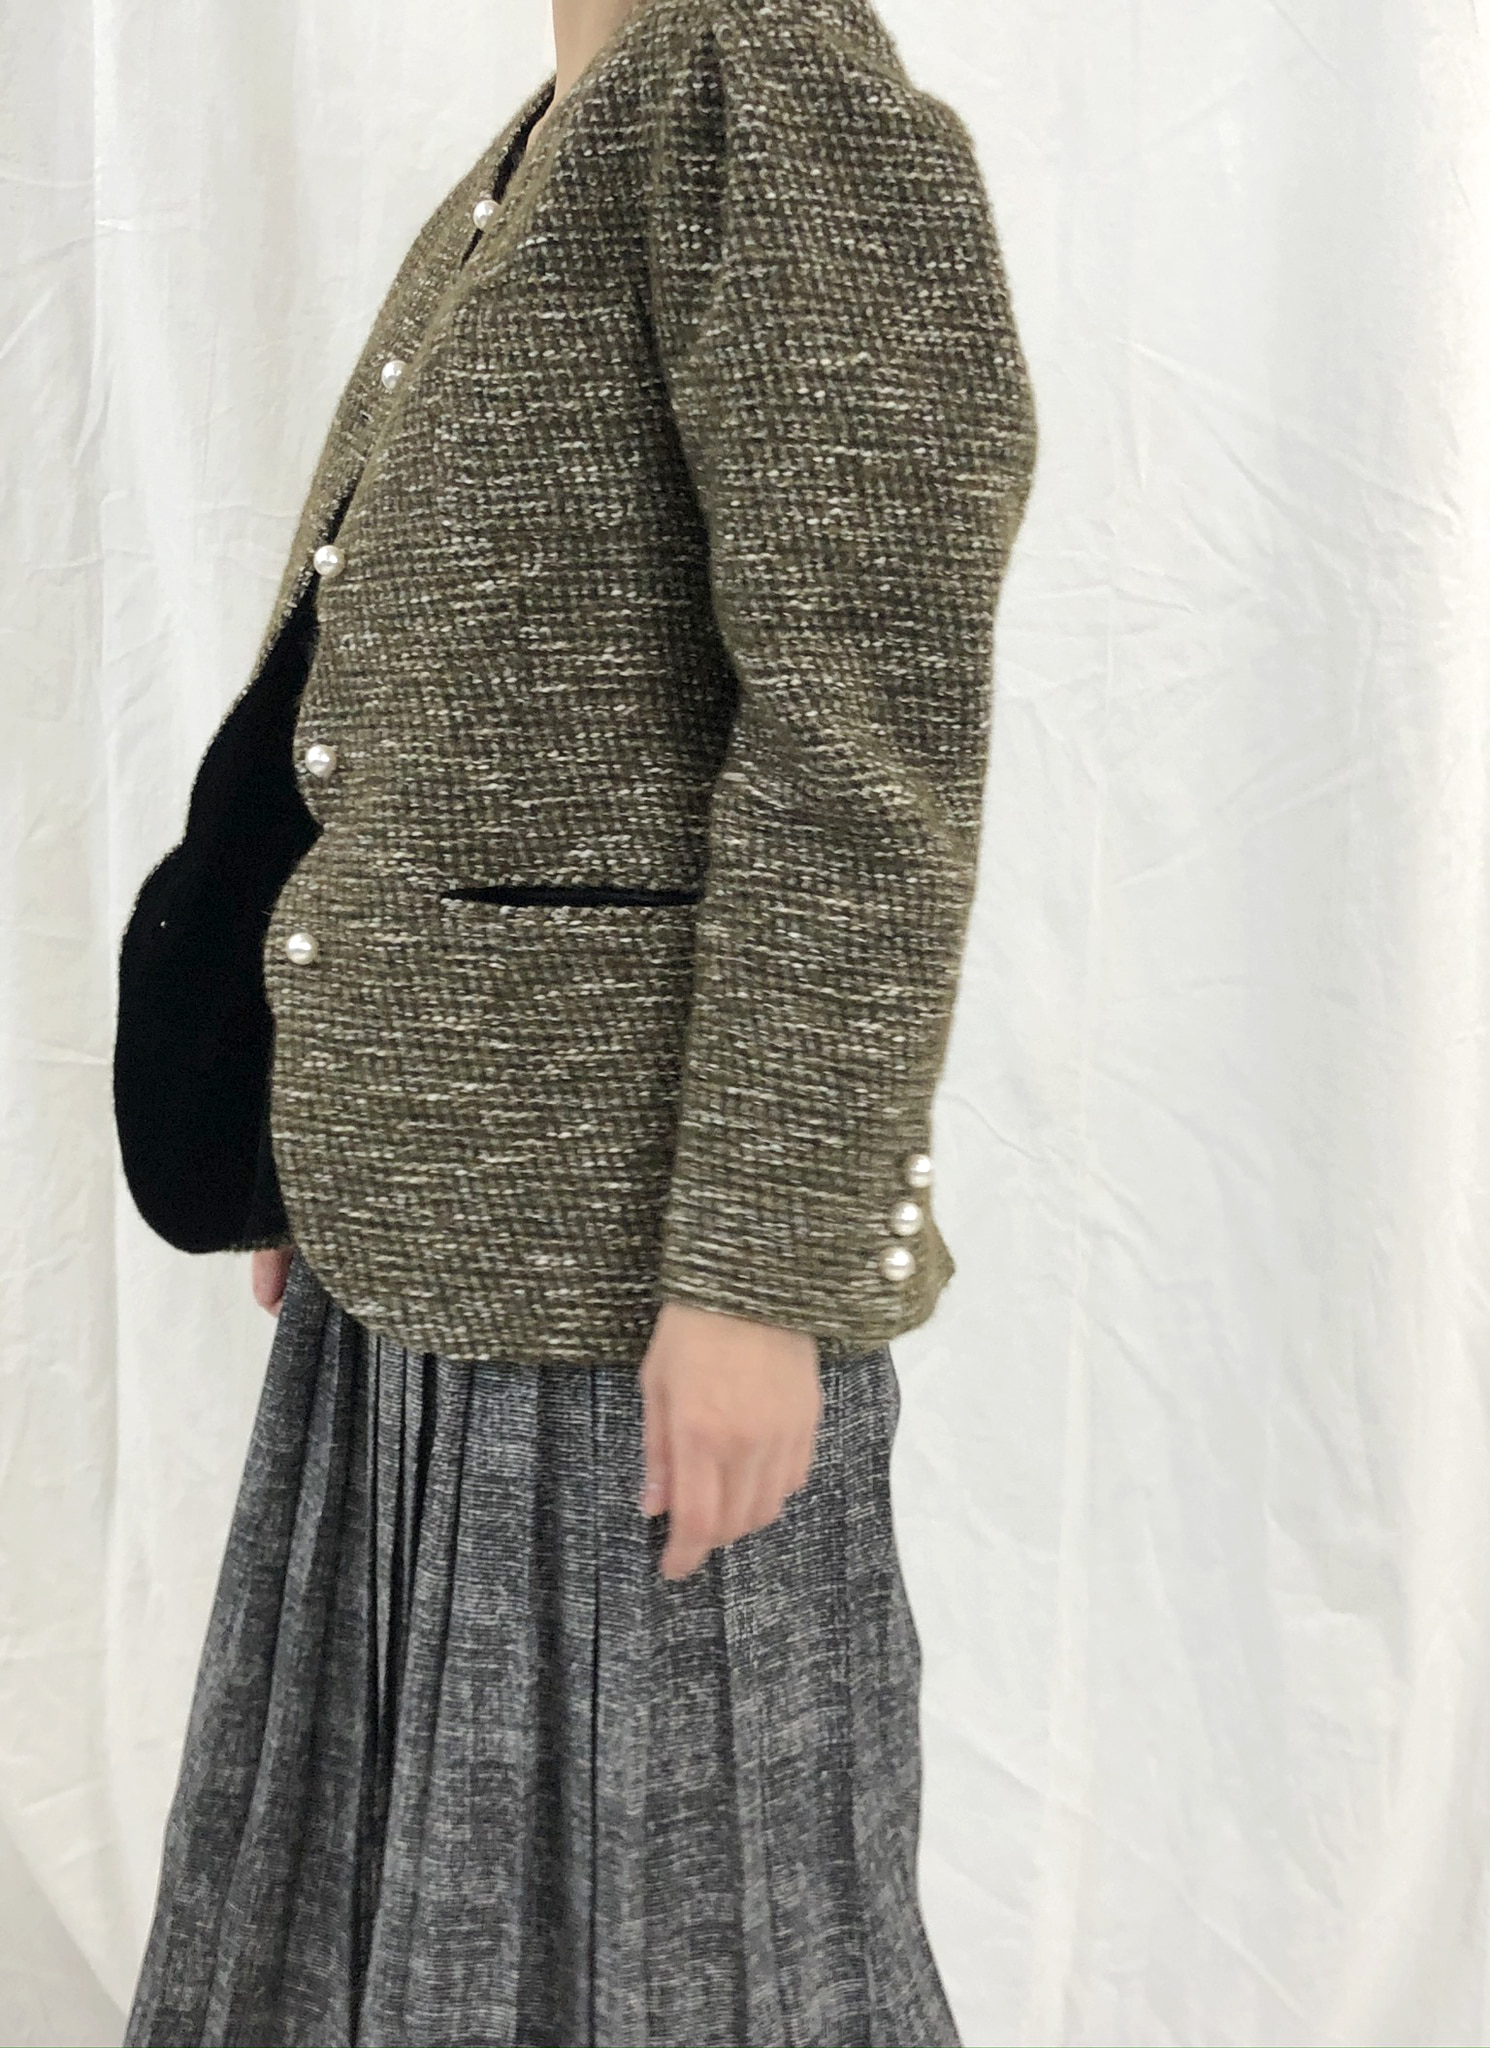 BF EXTRA 15% OFF [MID SALE 15% OFF] RETRO SCALLOP JACKET in khaki tweed